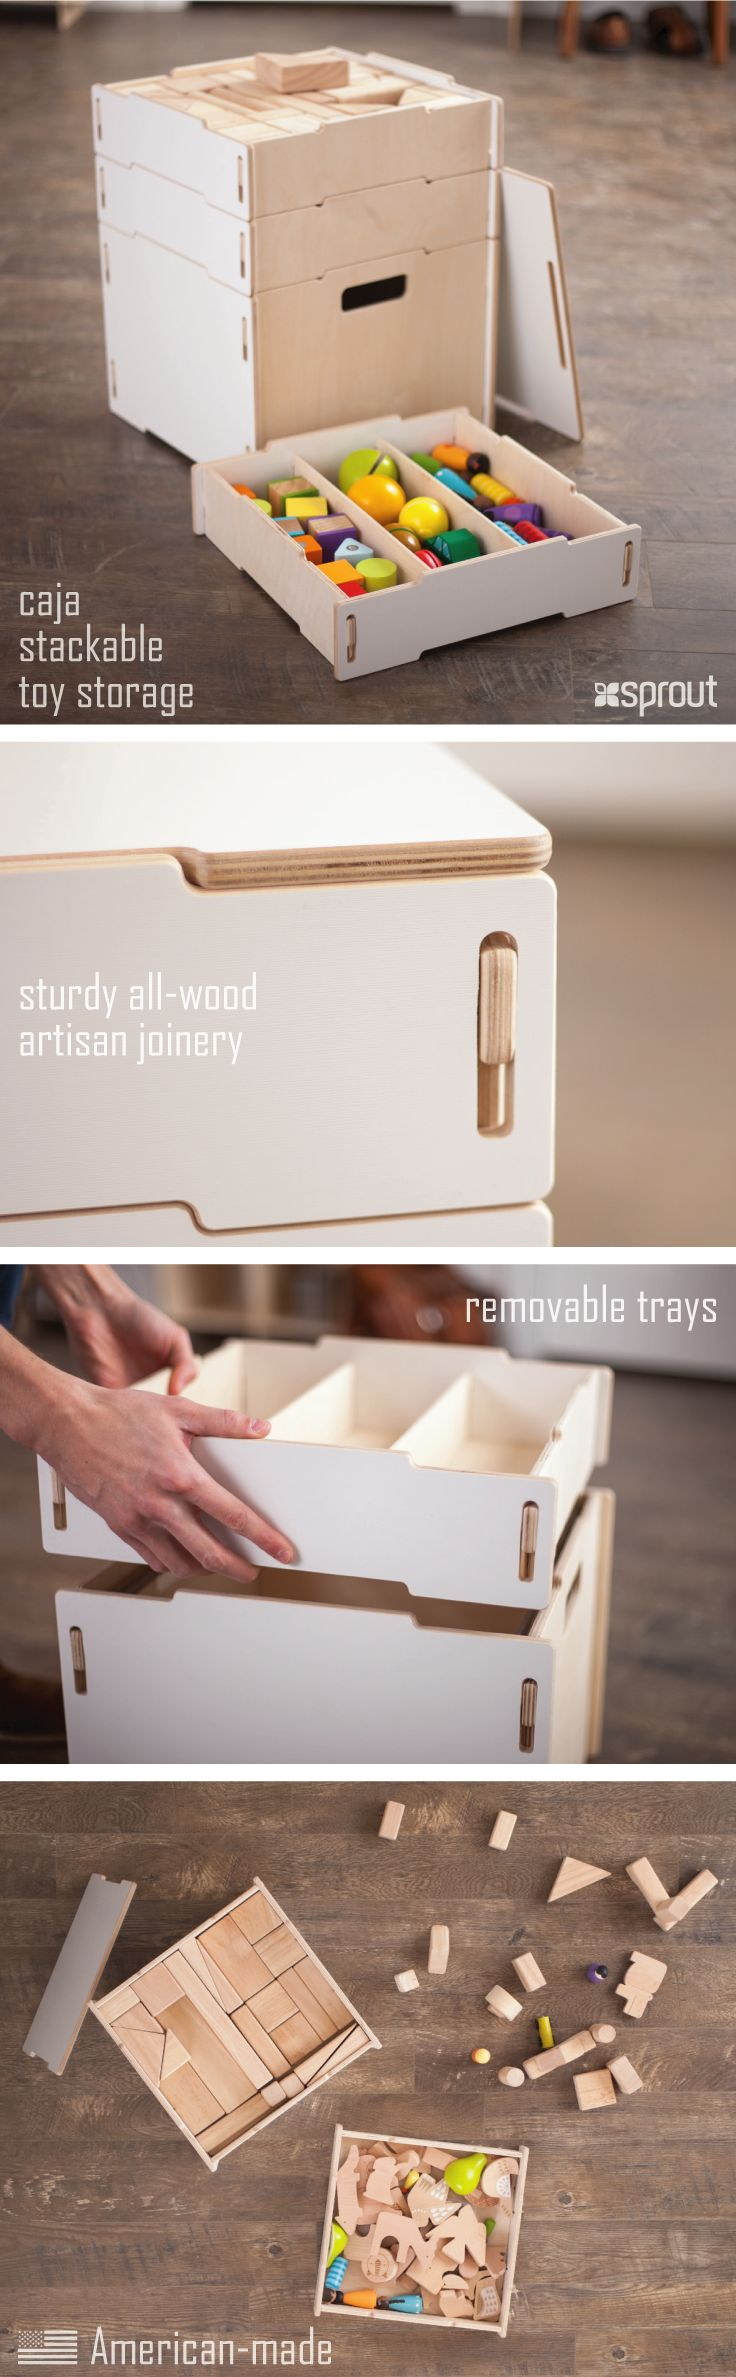 Great kid storage solutions. Kids love keeping their things in these wooden storage bins with lids, and parents love the easy organization and cleanup.   Learn more about the wooden storage boxes at Sprout.